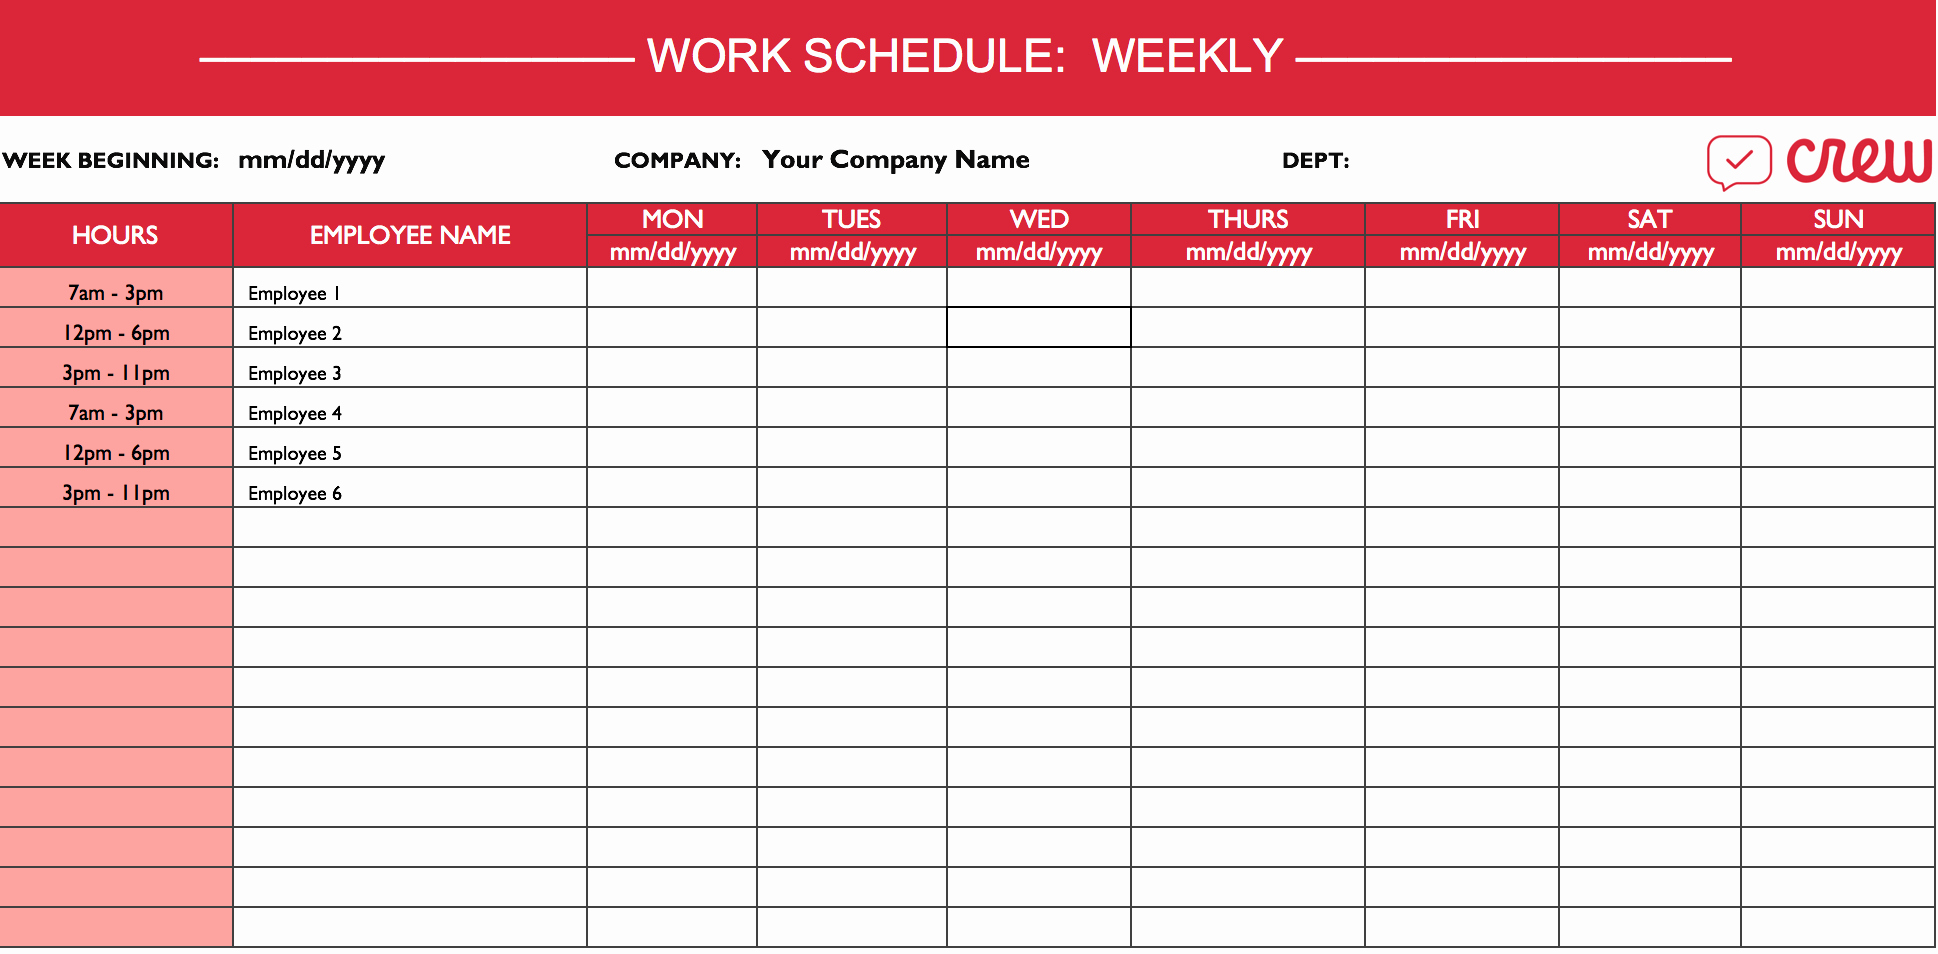 Free Printable Work Schedule Templates Elegant Weekly Work Schedule Template I Crew